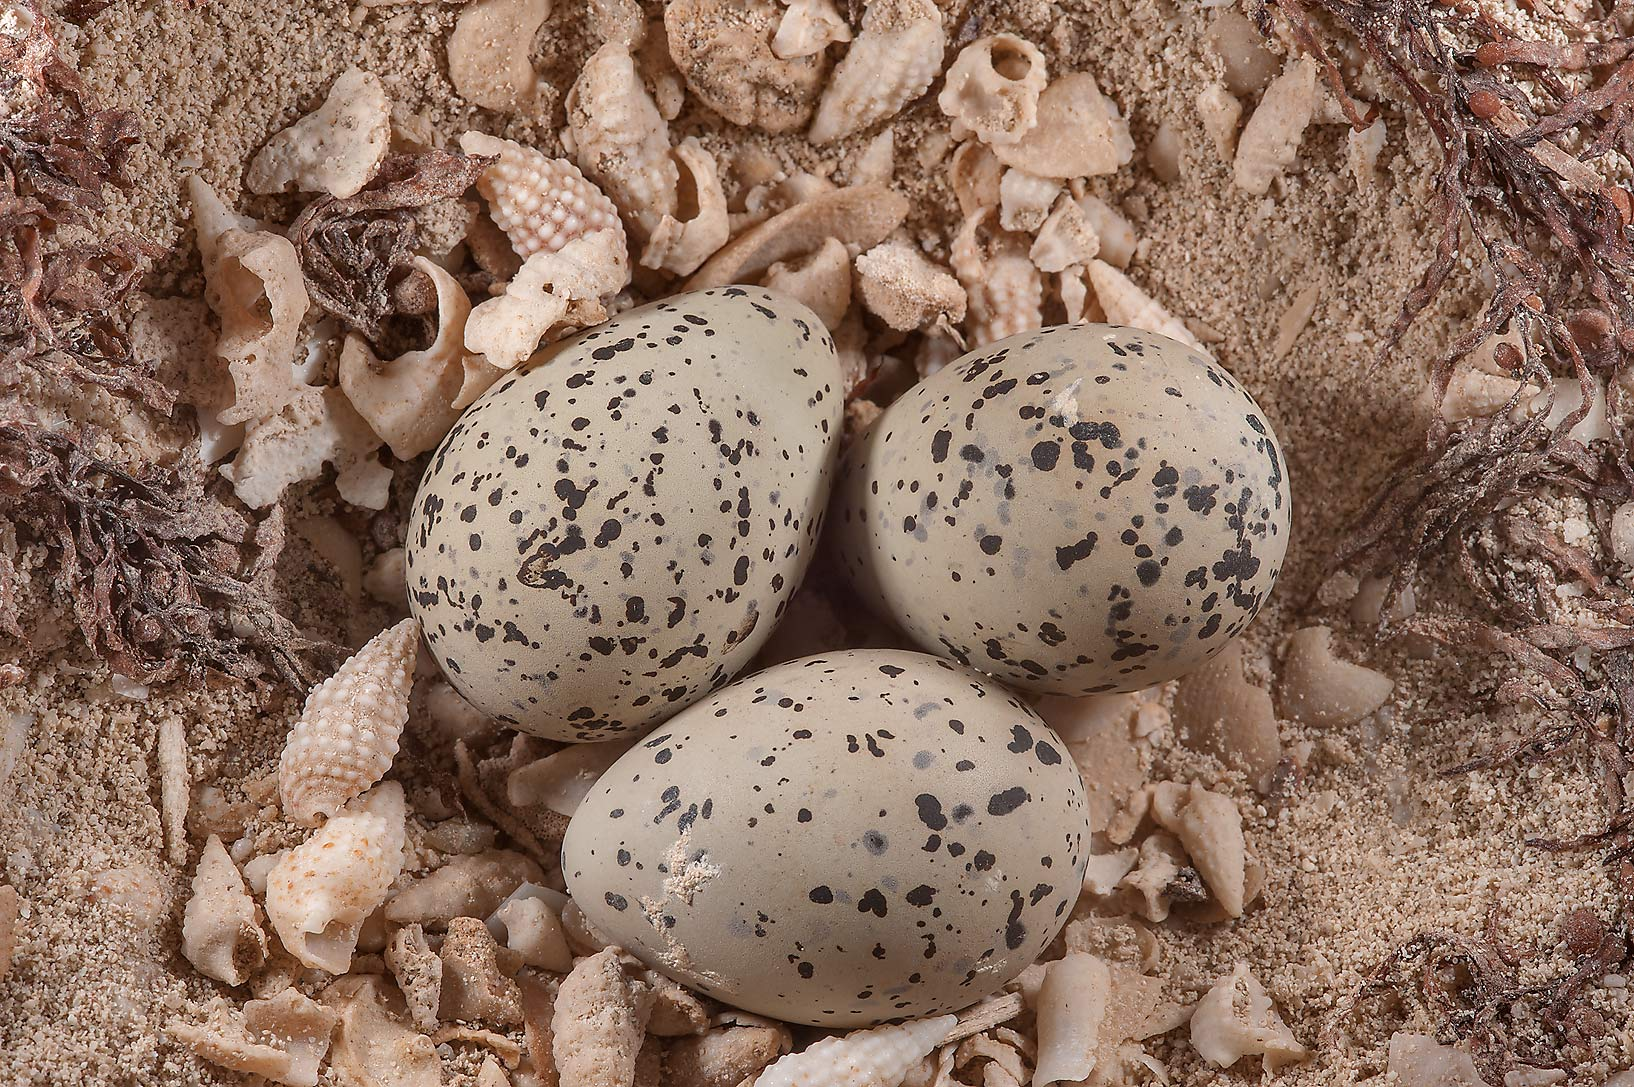 Eggs of sea birds Sterna (terns) on a beach near Zubara. Northern Qatar